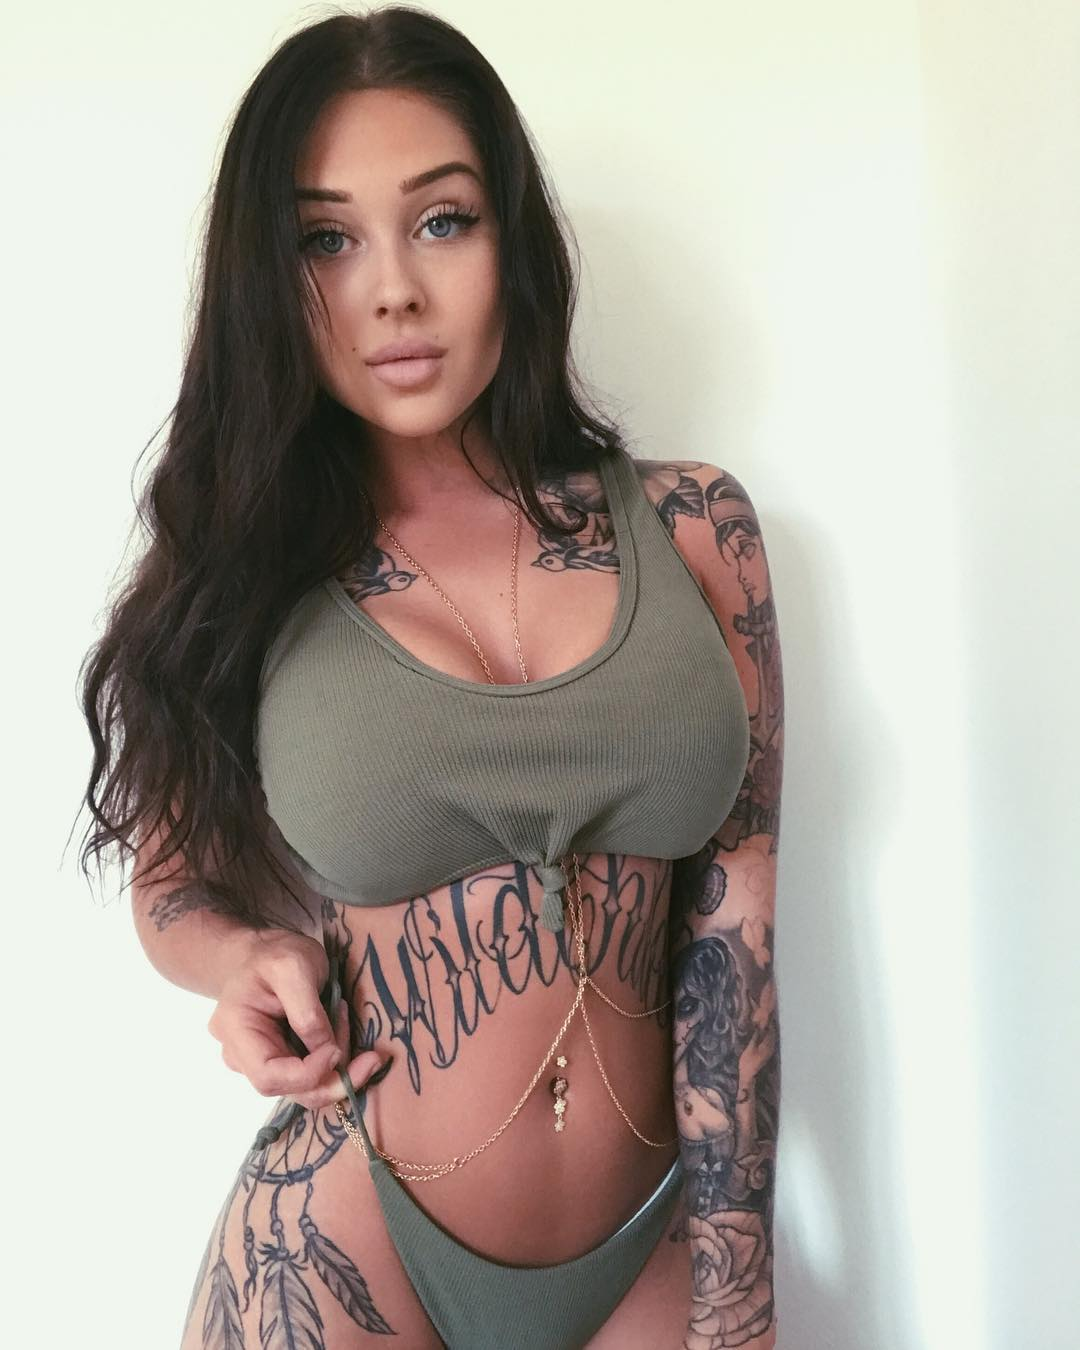 sexy inked girl Valerie Cossette - nice tits in a tank top